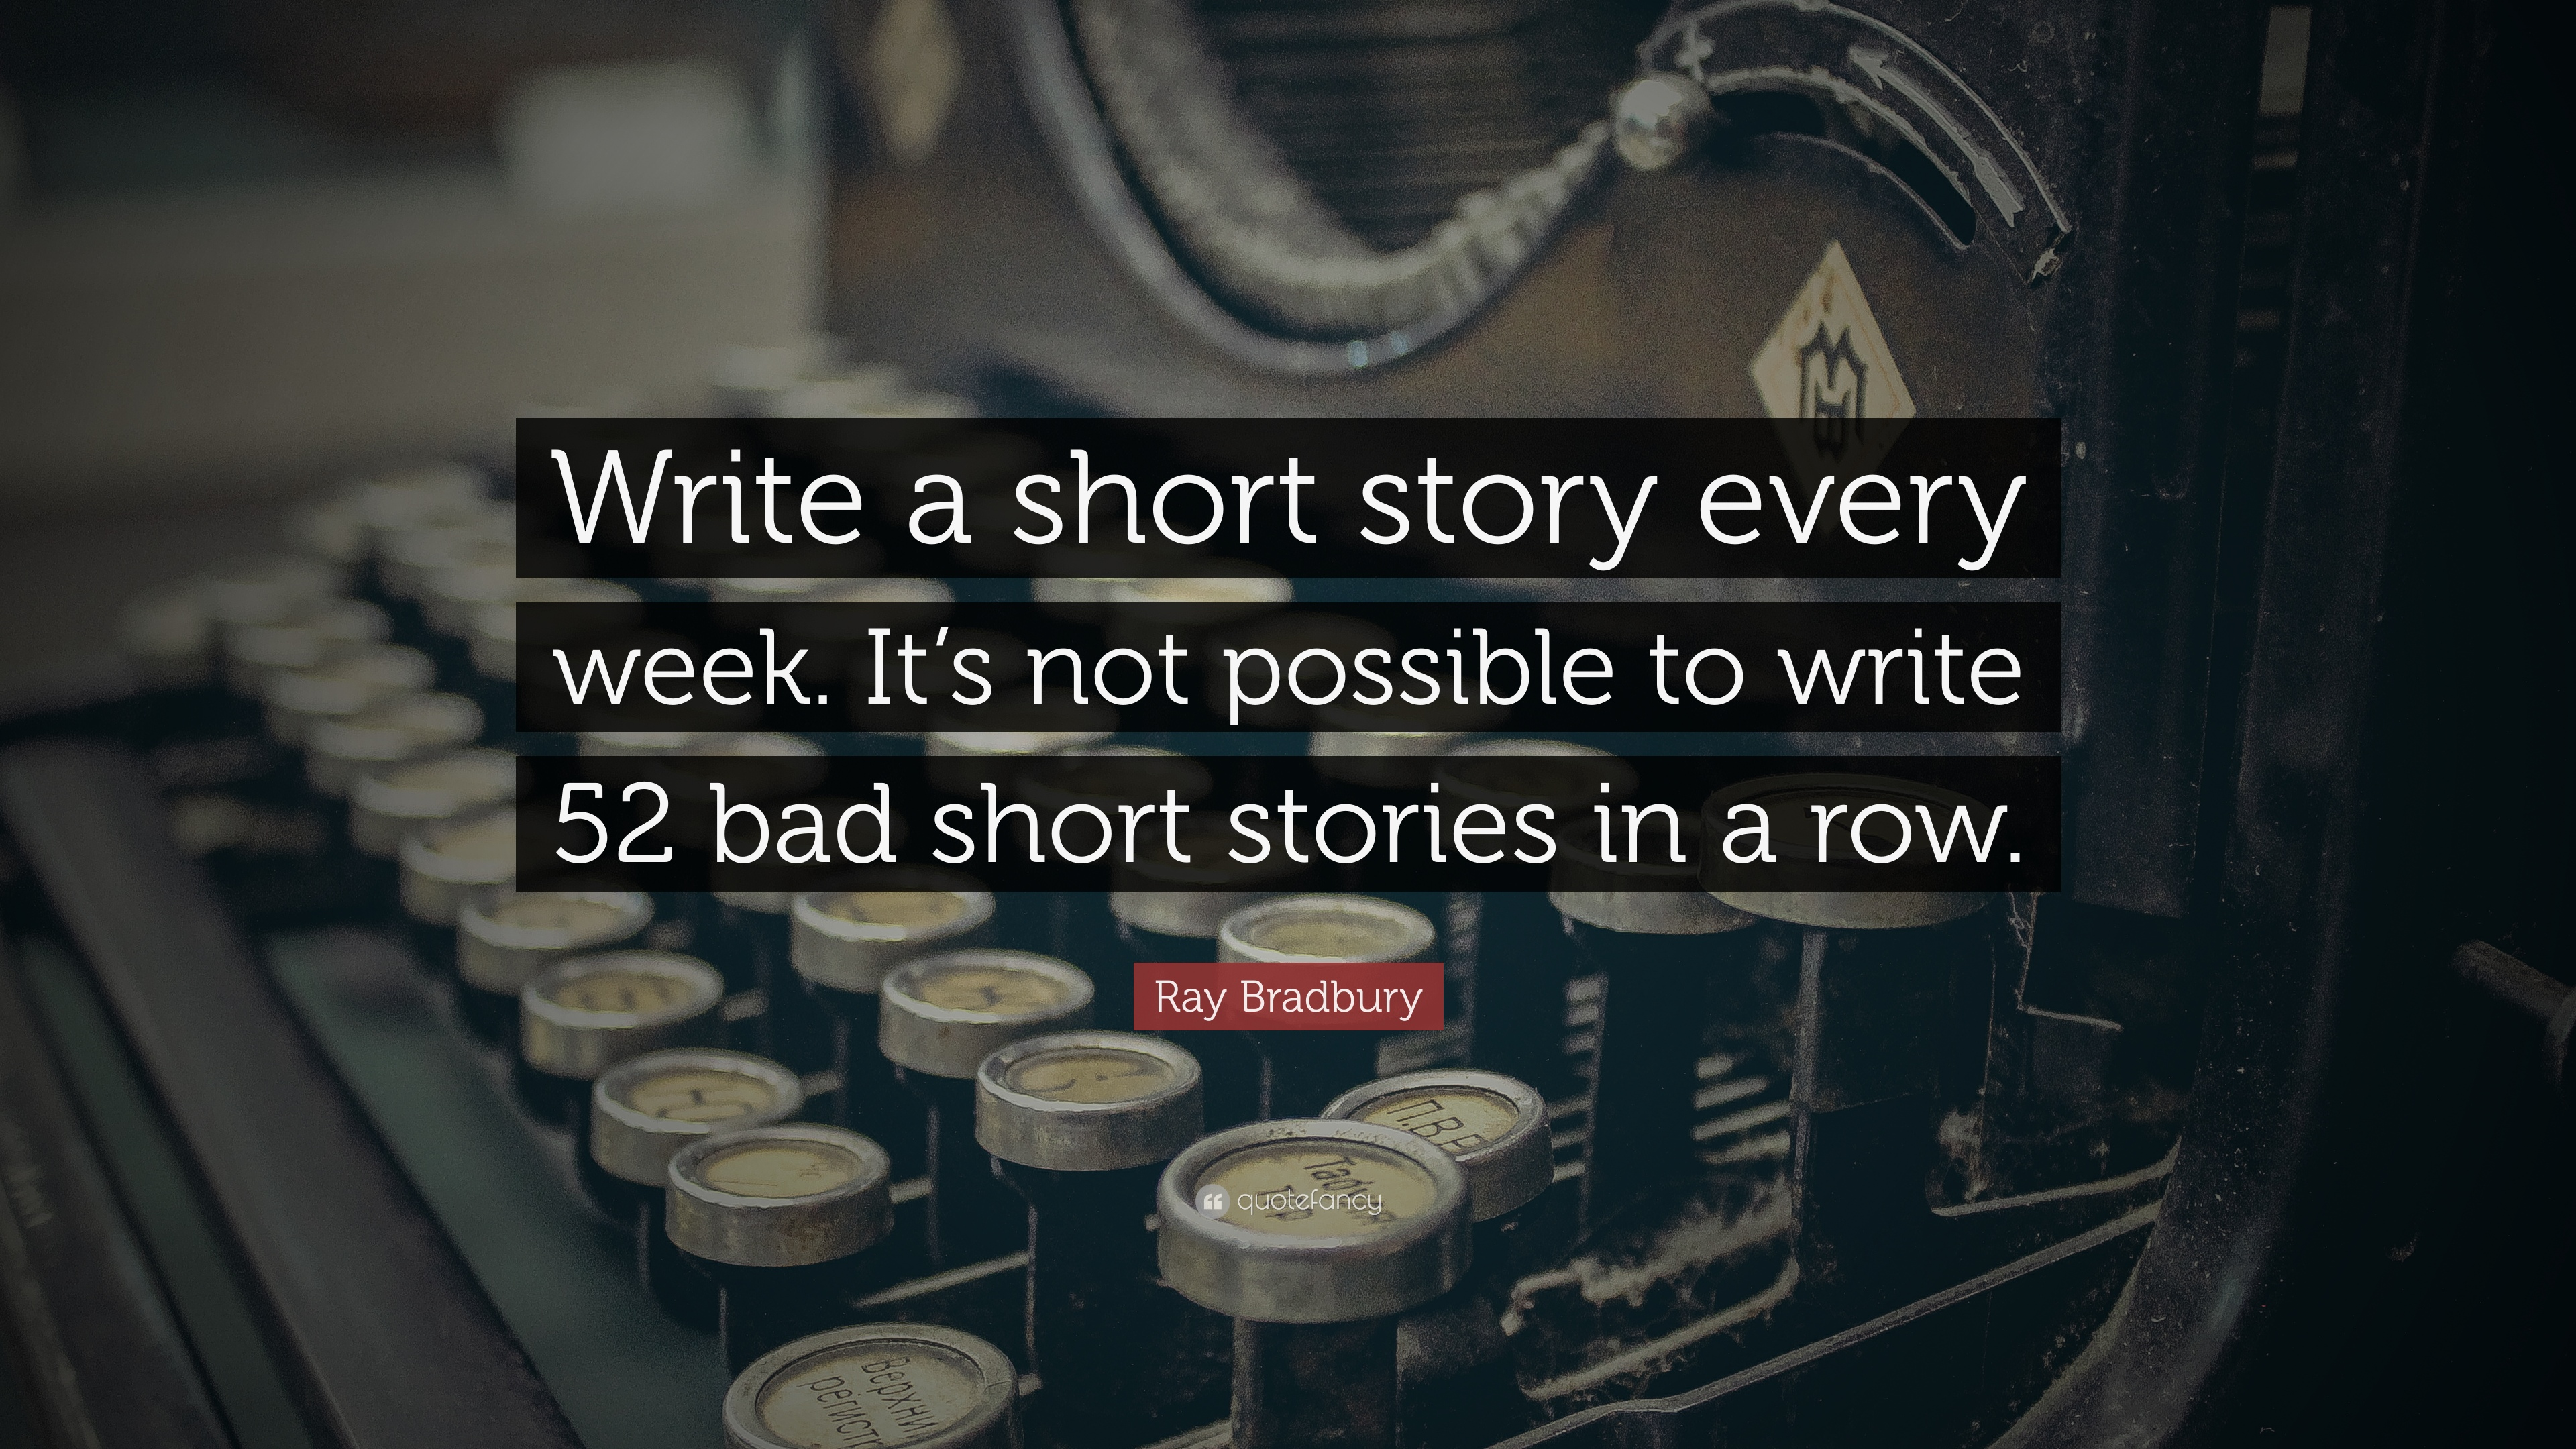 ray bradbury quote write a short story every week it s not